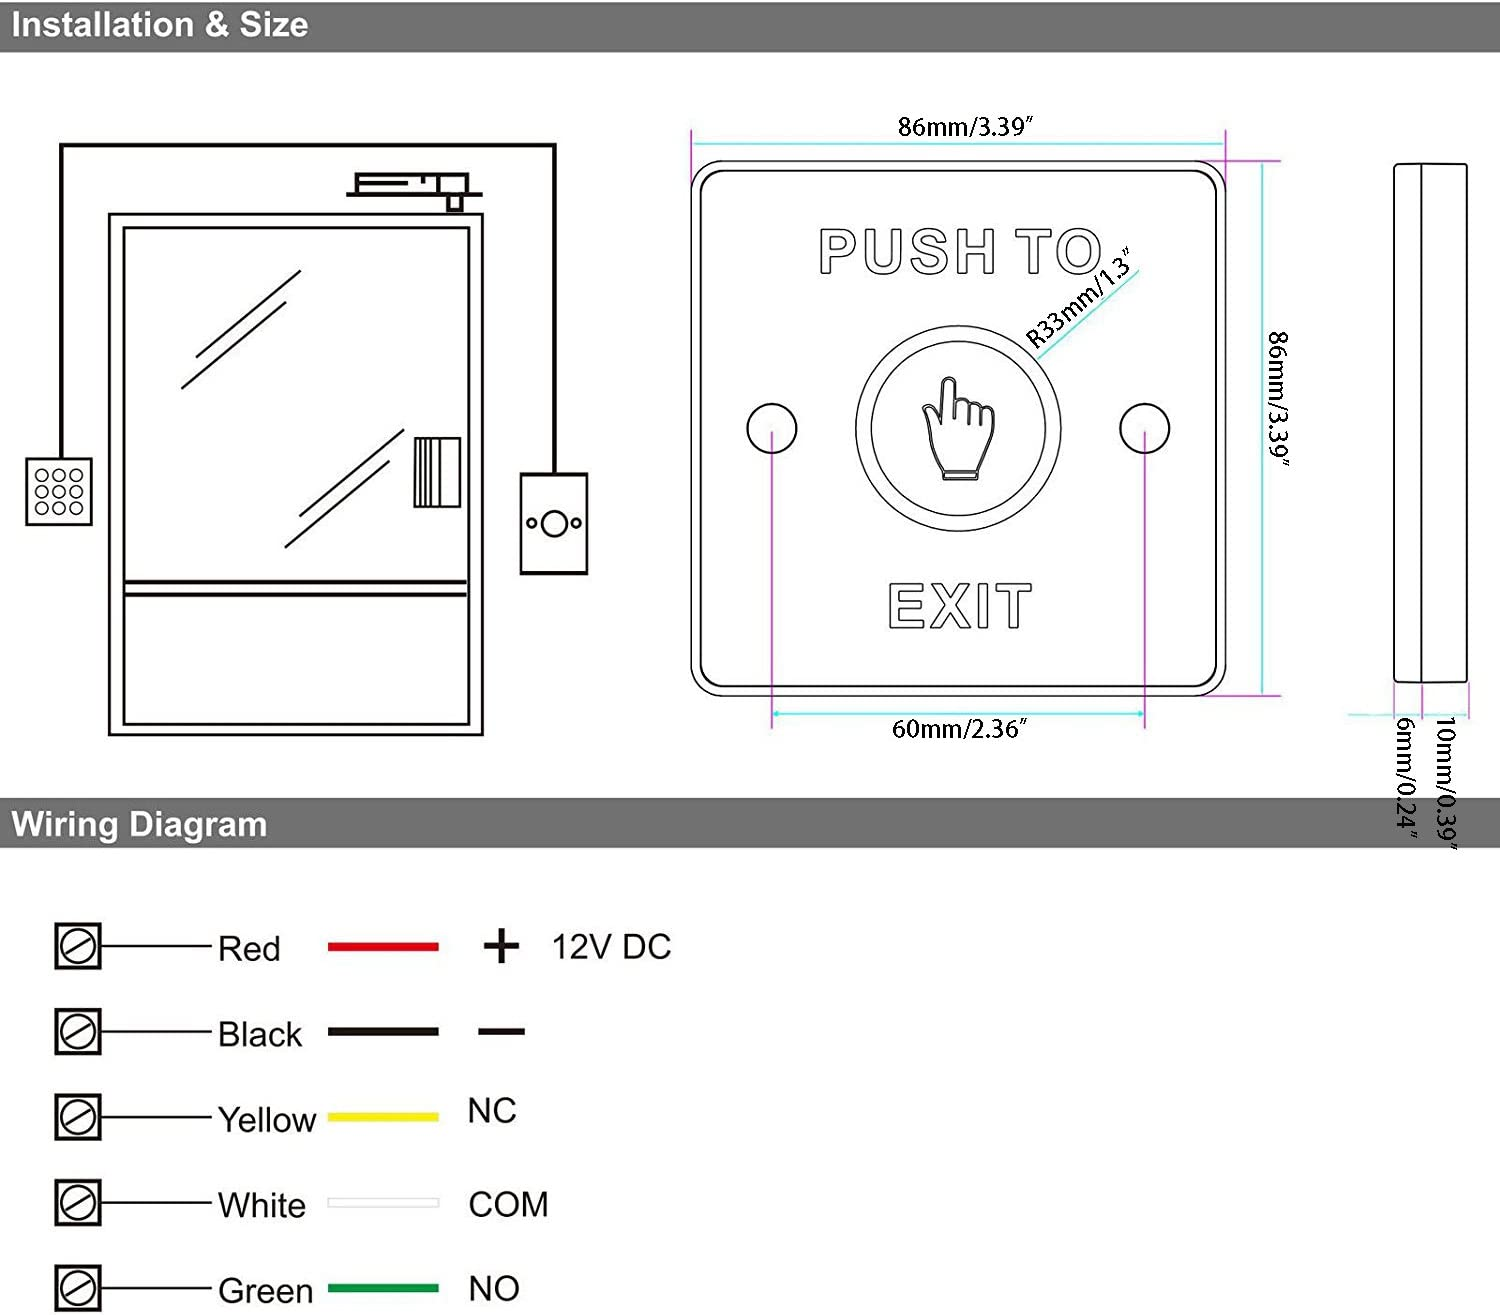 Wall Mount Piezoelectric Door Release Touch Exit Button Panel Led Light Switch - -